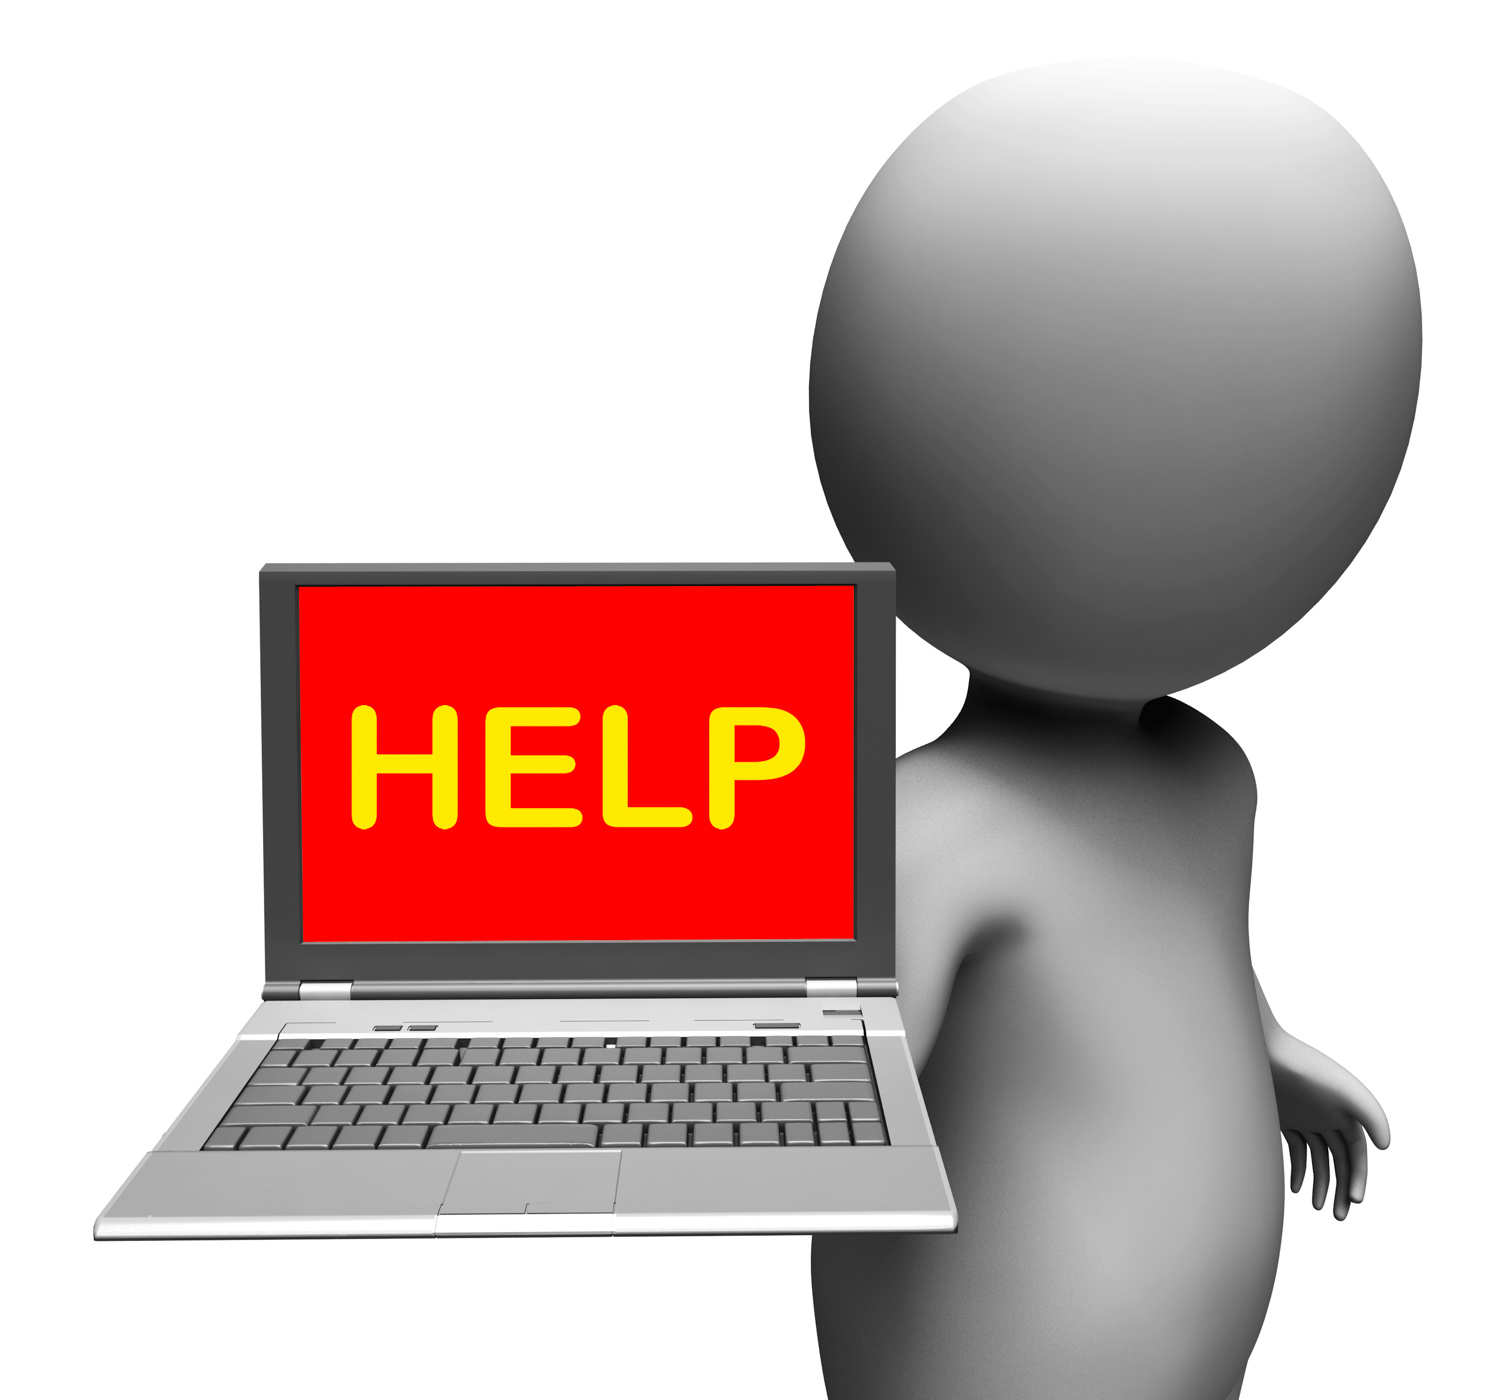 Help on laptop shows helping customer service help desk or support photo